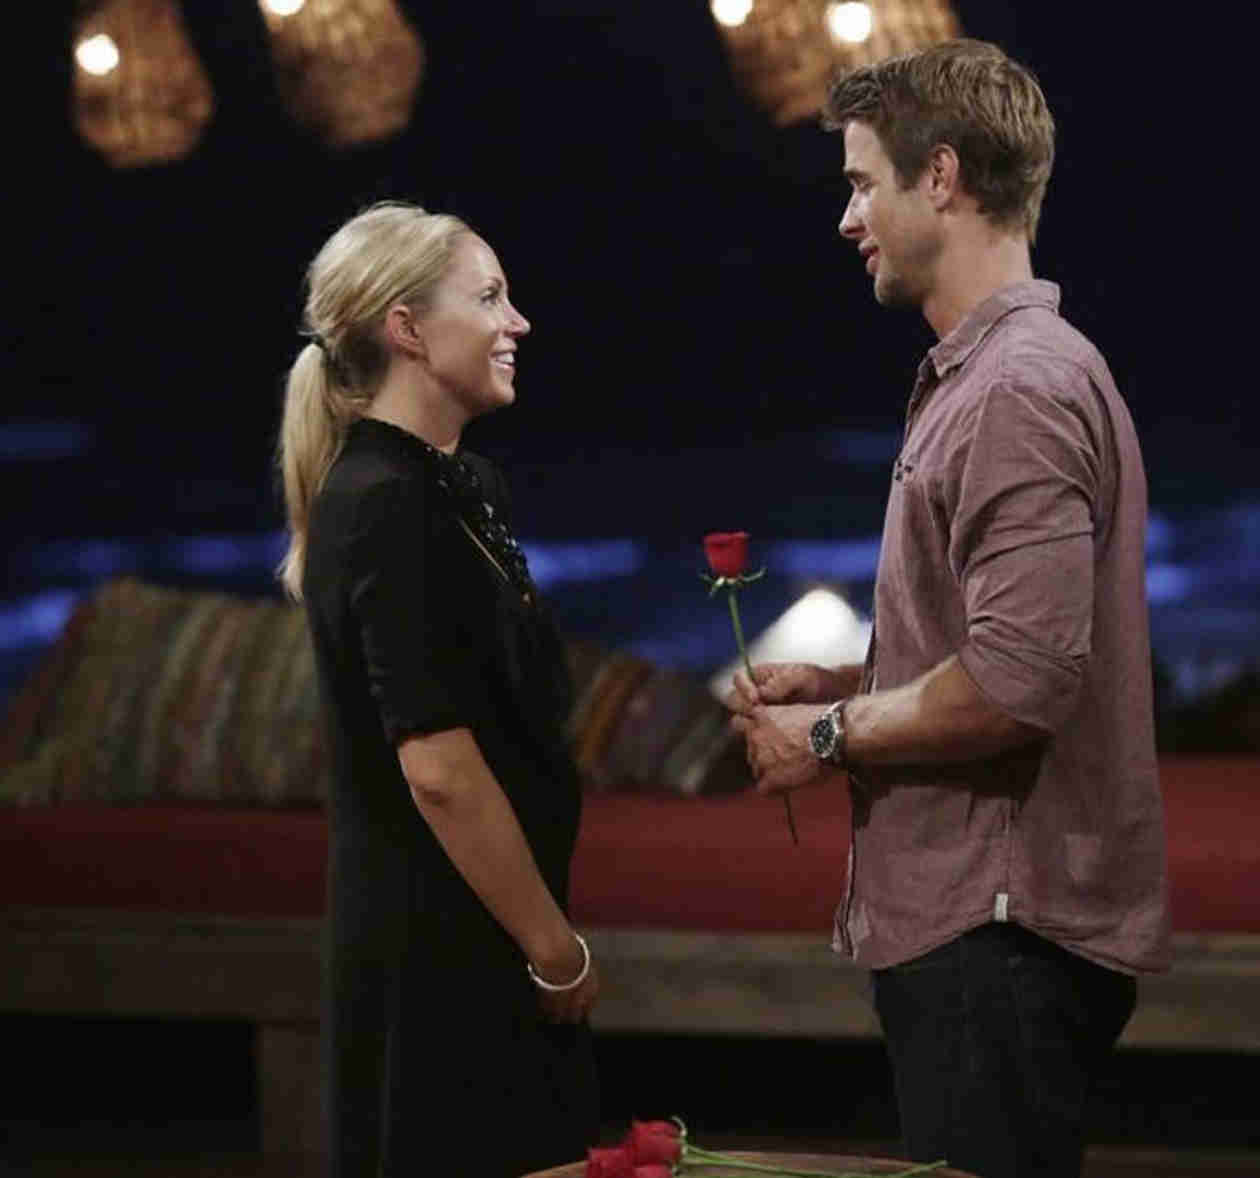 Sarah Herron Says New Arrival on BiP Could Change Everything With Robert